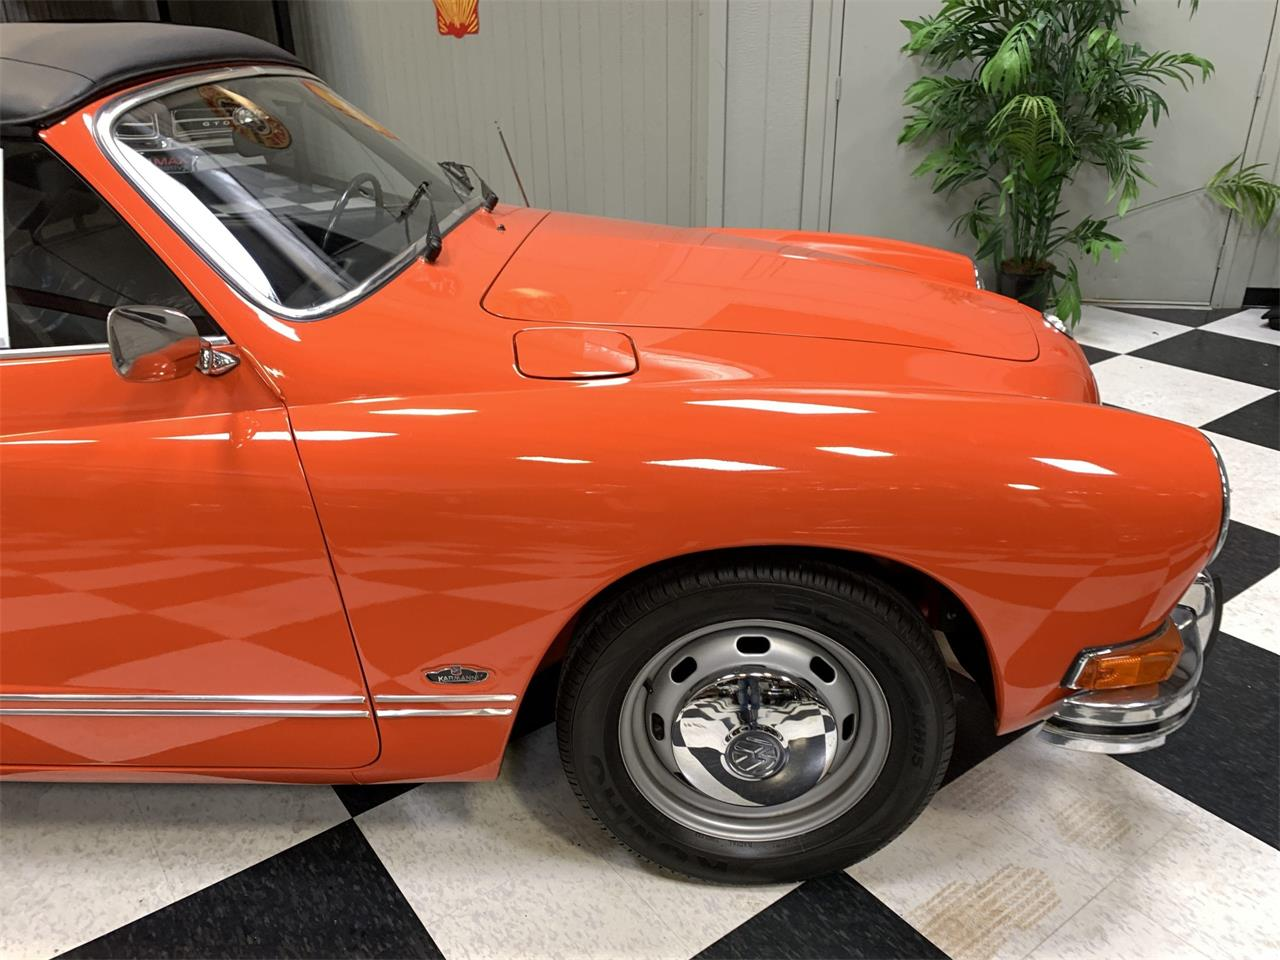 1974 Volkswagen Karmann Ghia for sale in Pittsburgh, PA – photo 13